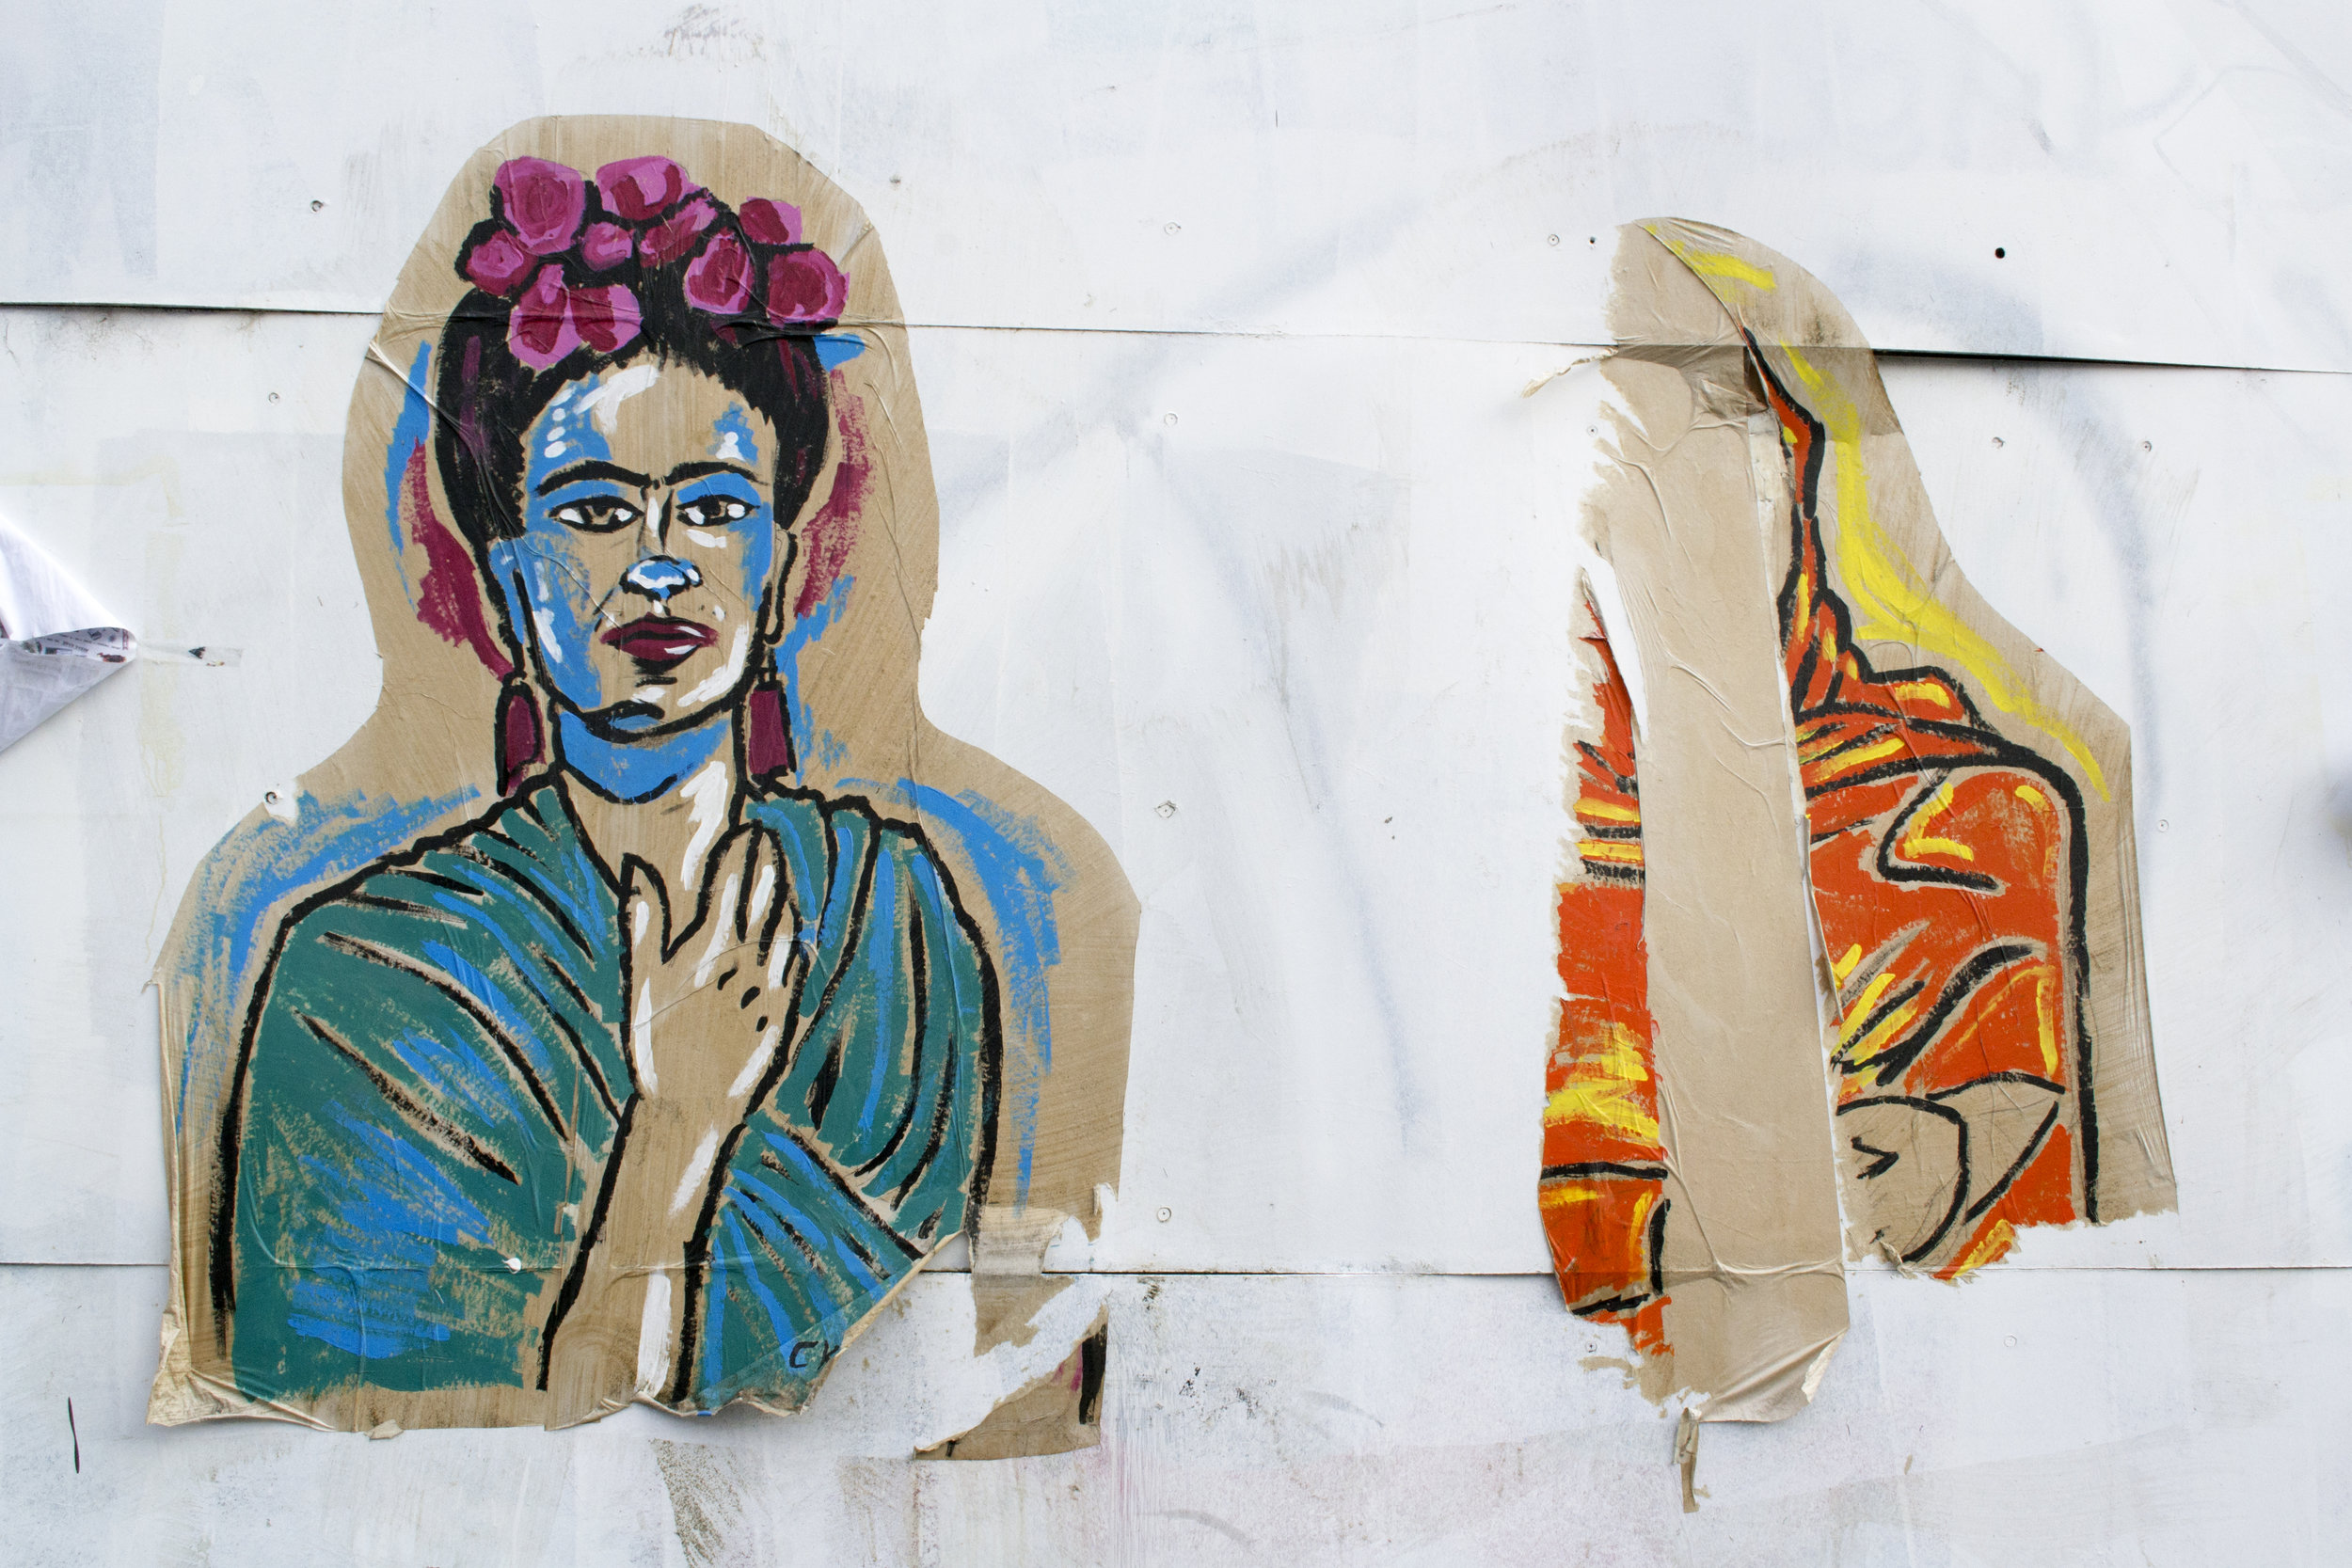 Frida Kahlo  &  Malala Yousafzai  paste ups, unknown artist, Photo: Sally Northfield